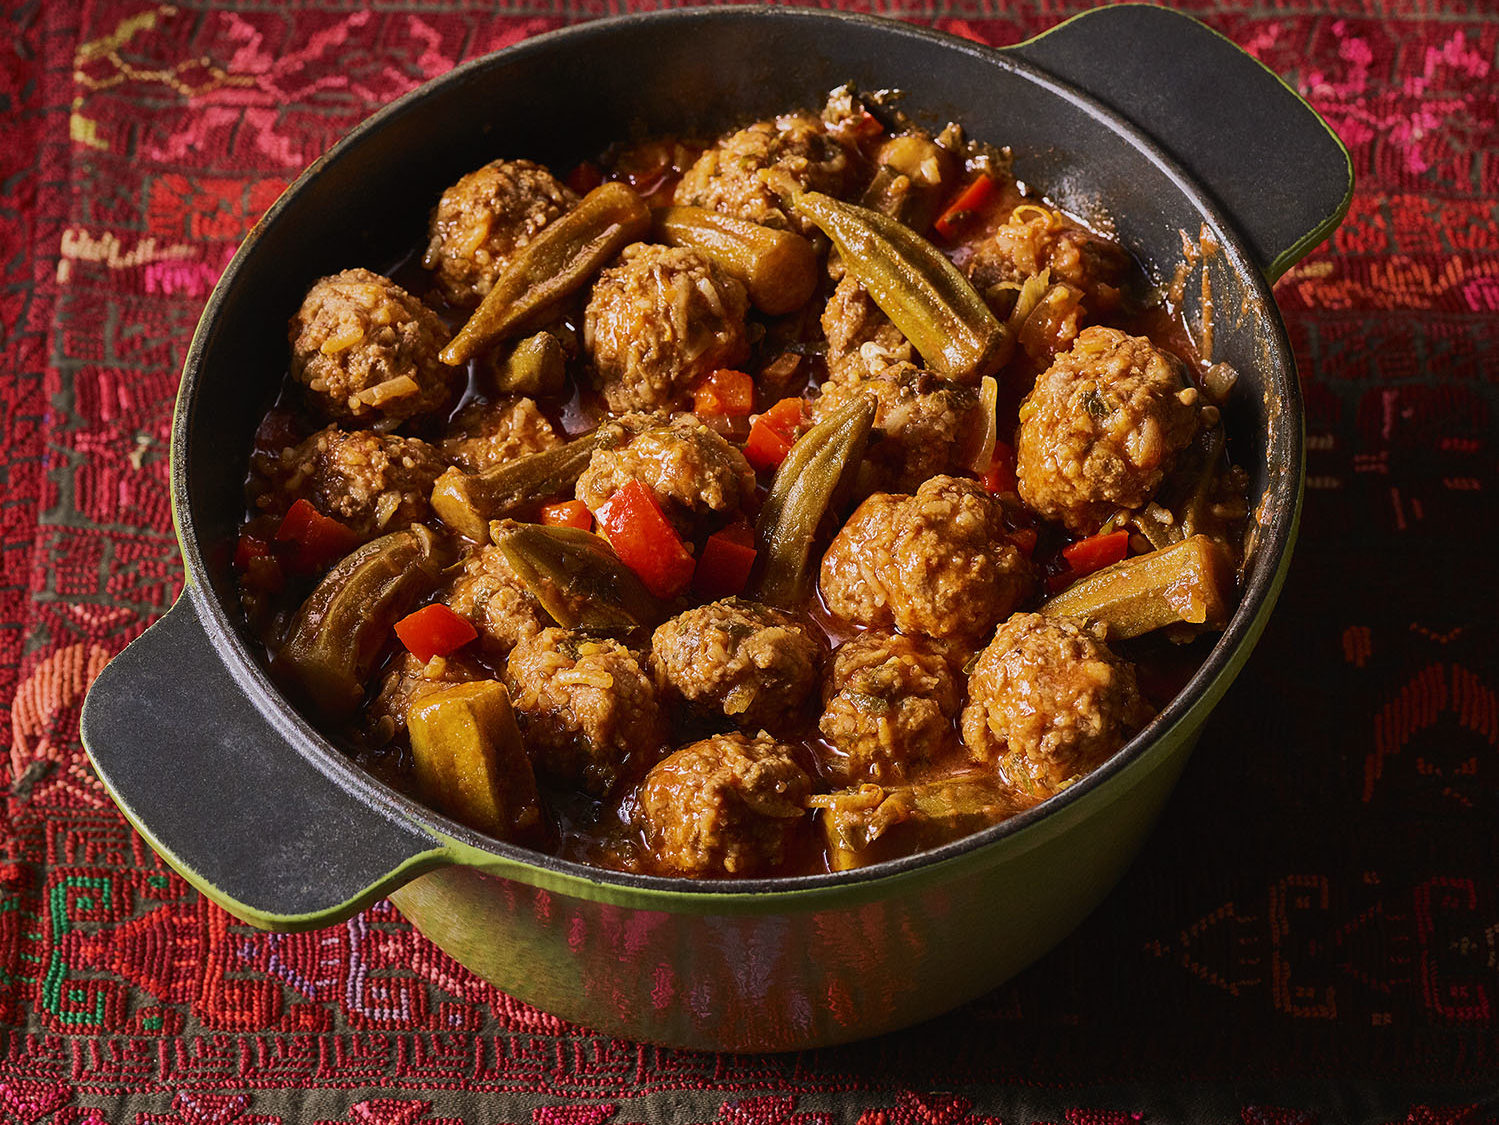 Meatballs with okra in a green Dutch oven atop a red tablecloth